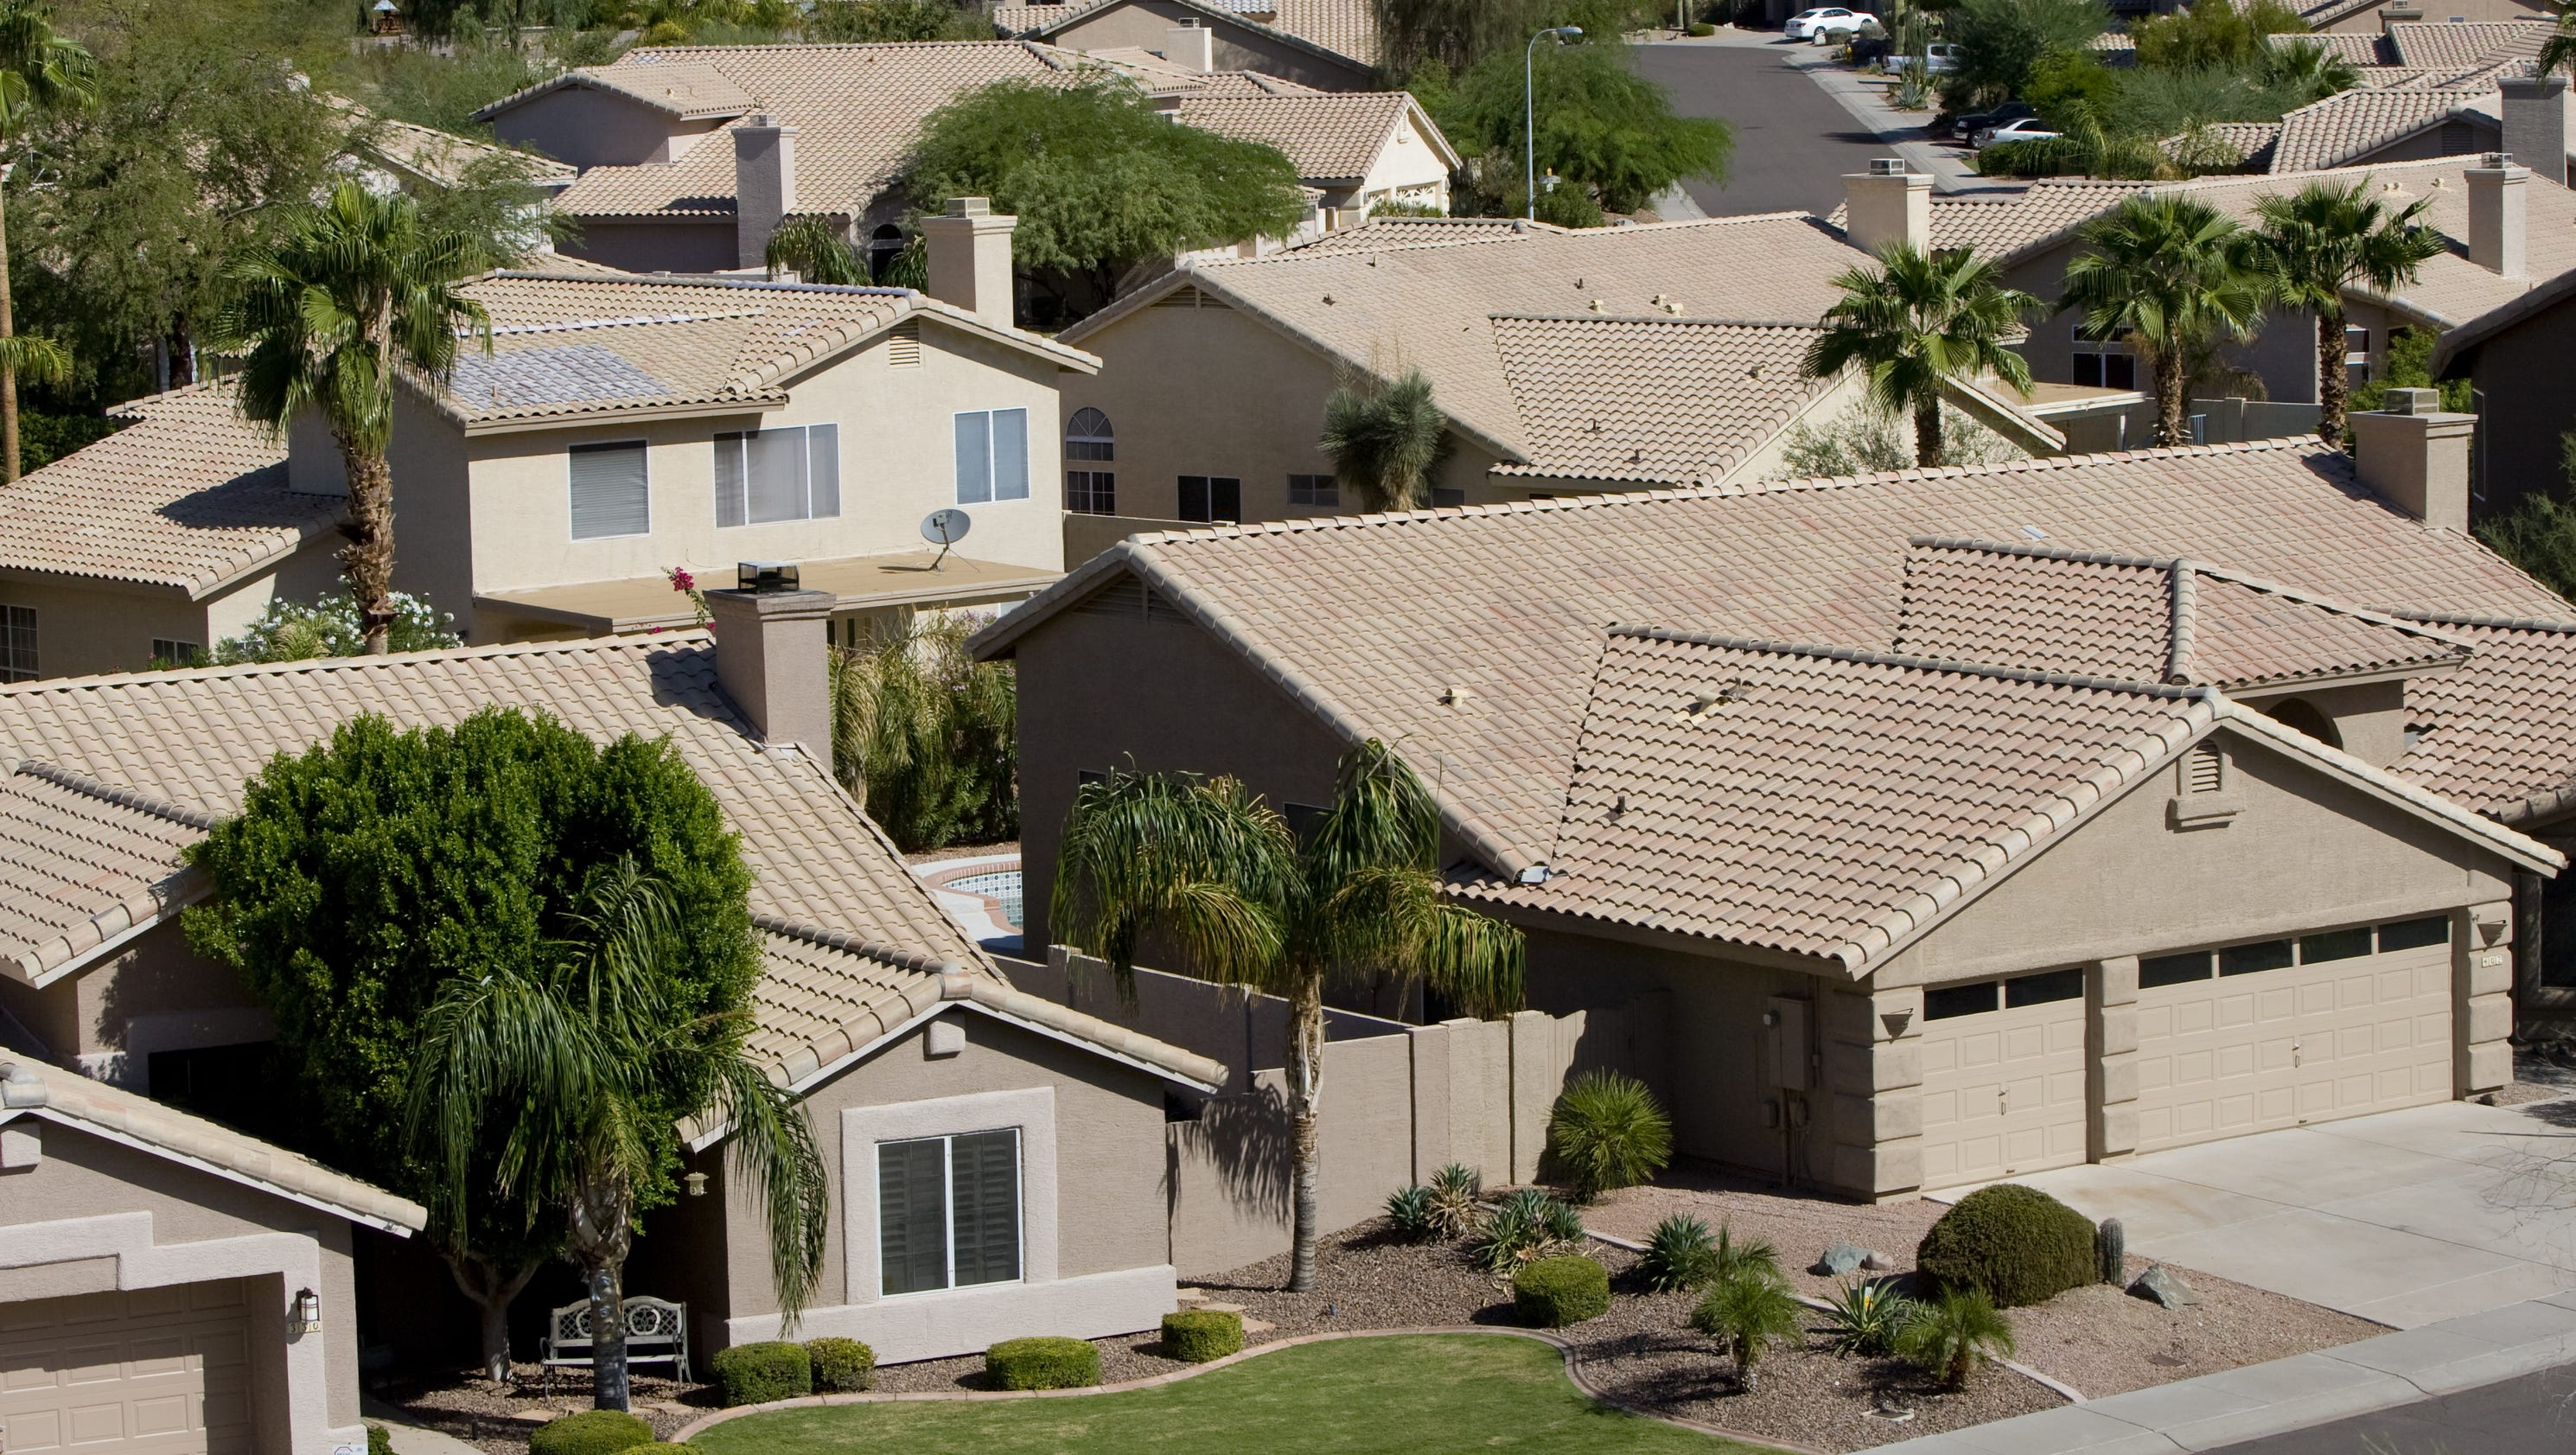 Multi Generational Homes Arizona Home Review